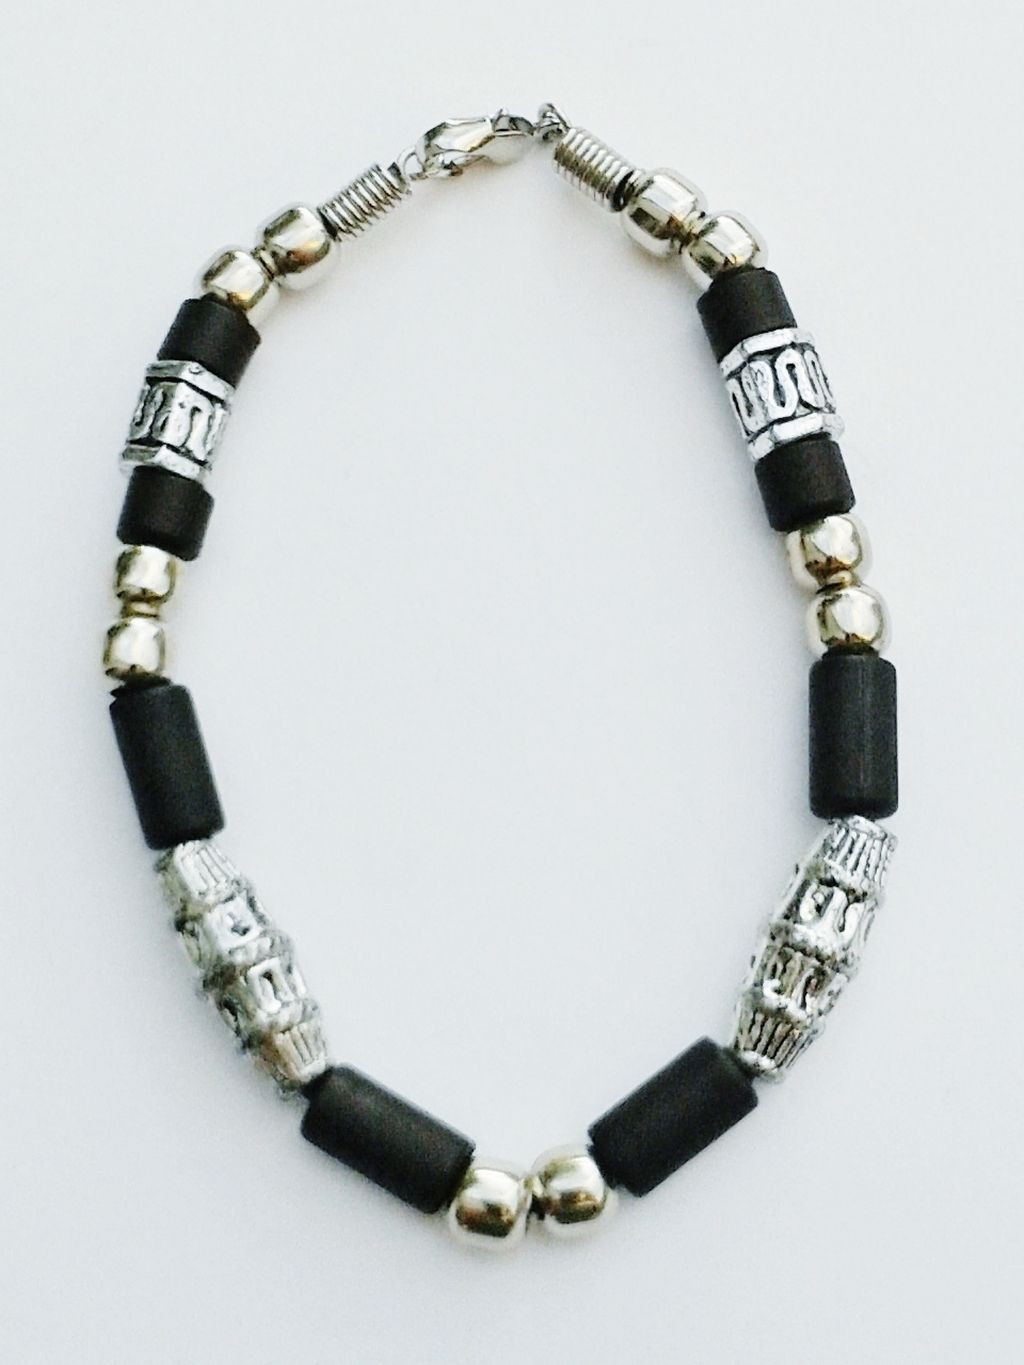 Hawaii Two-Tone Chrome Black Surfer Beaded Bracelet, Men's Beach Jewelry